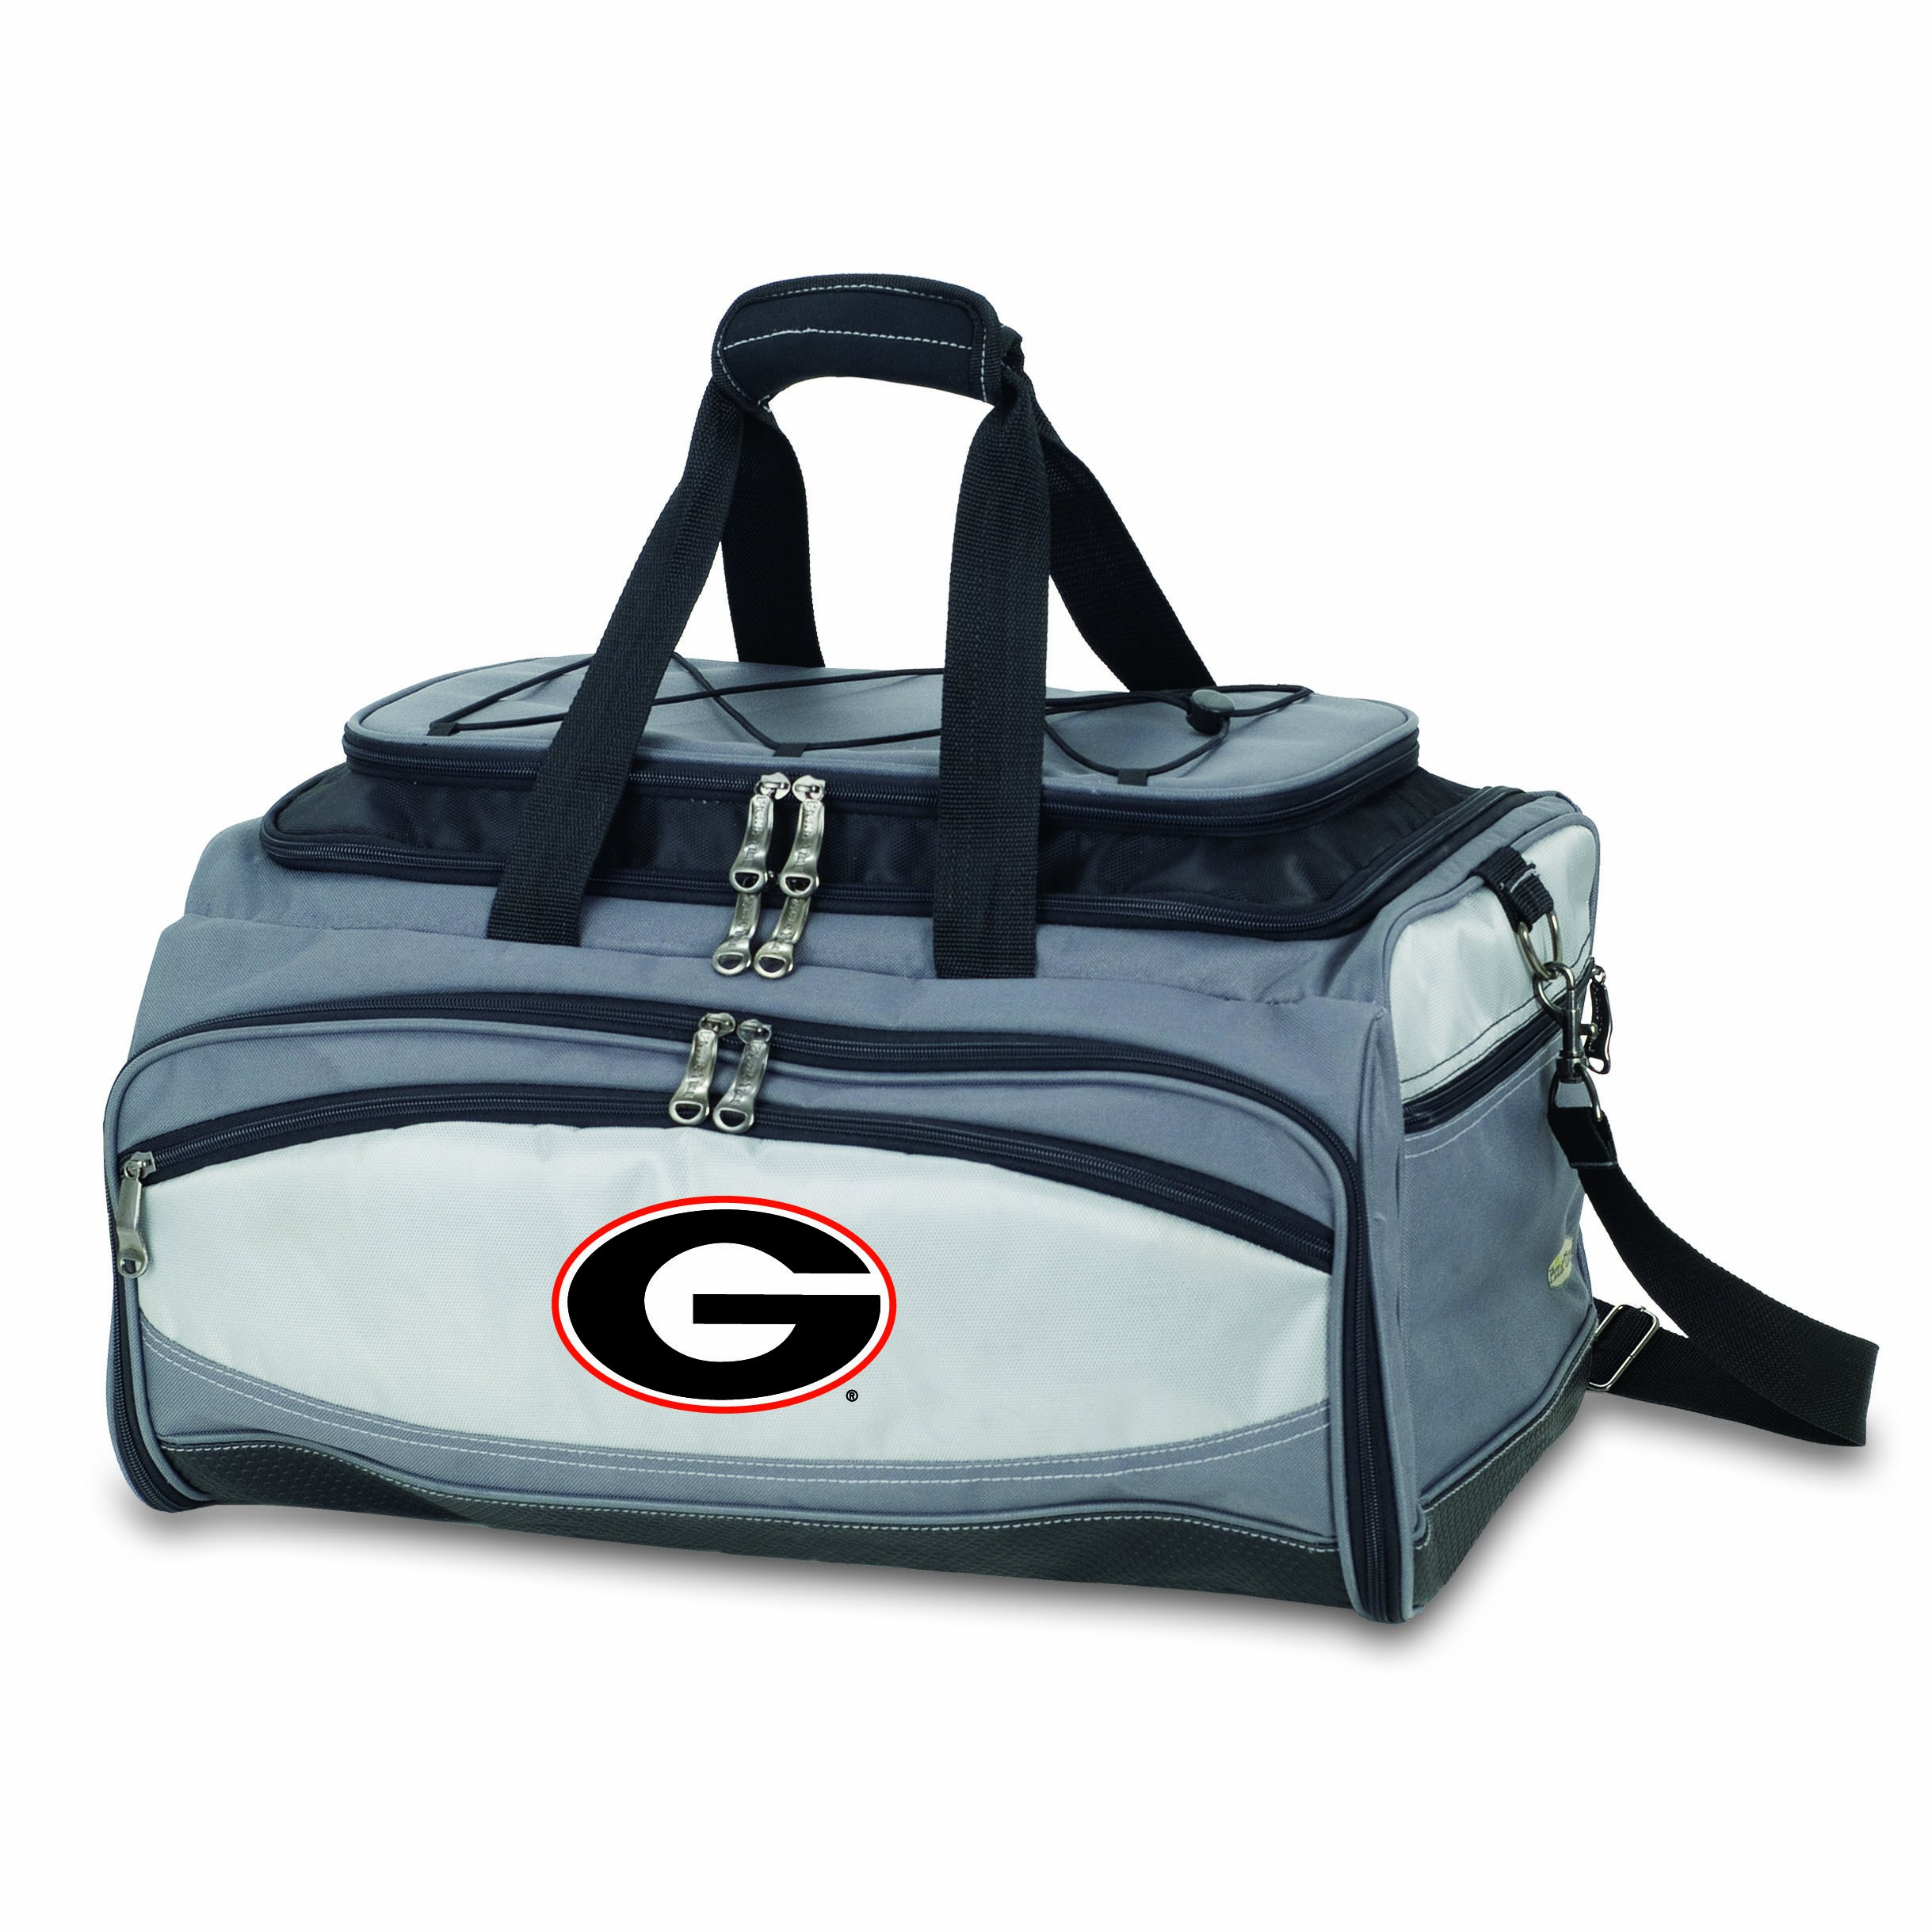 NCAA Georgia Bulldogs Buccaneer Tailgating Cooler with Grill